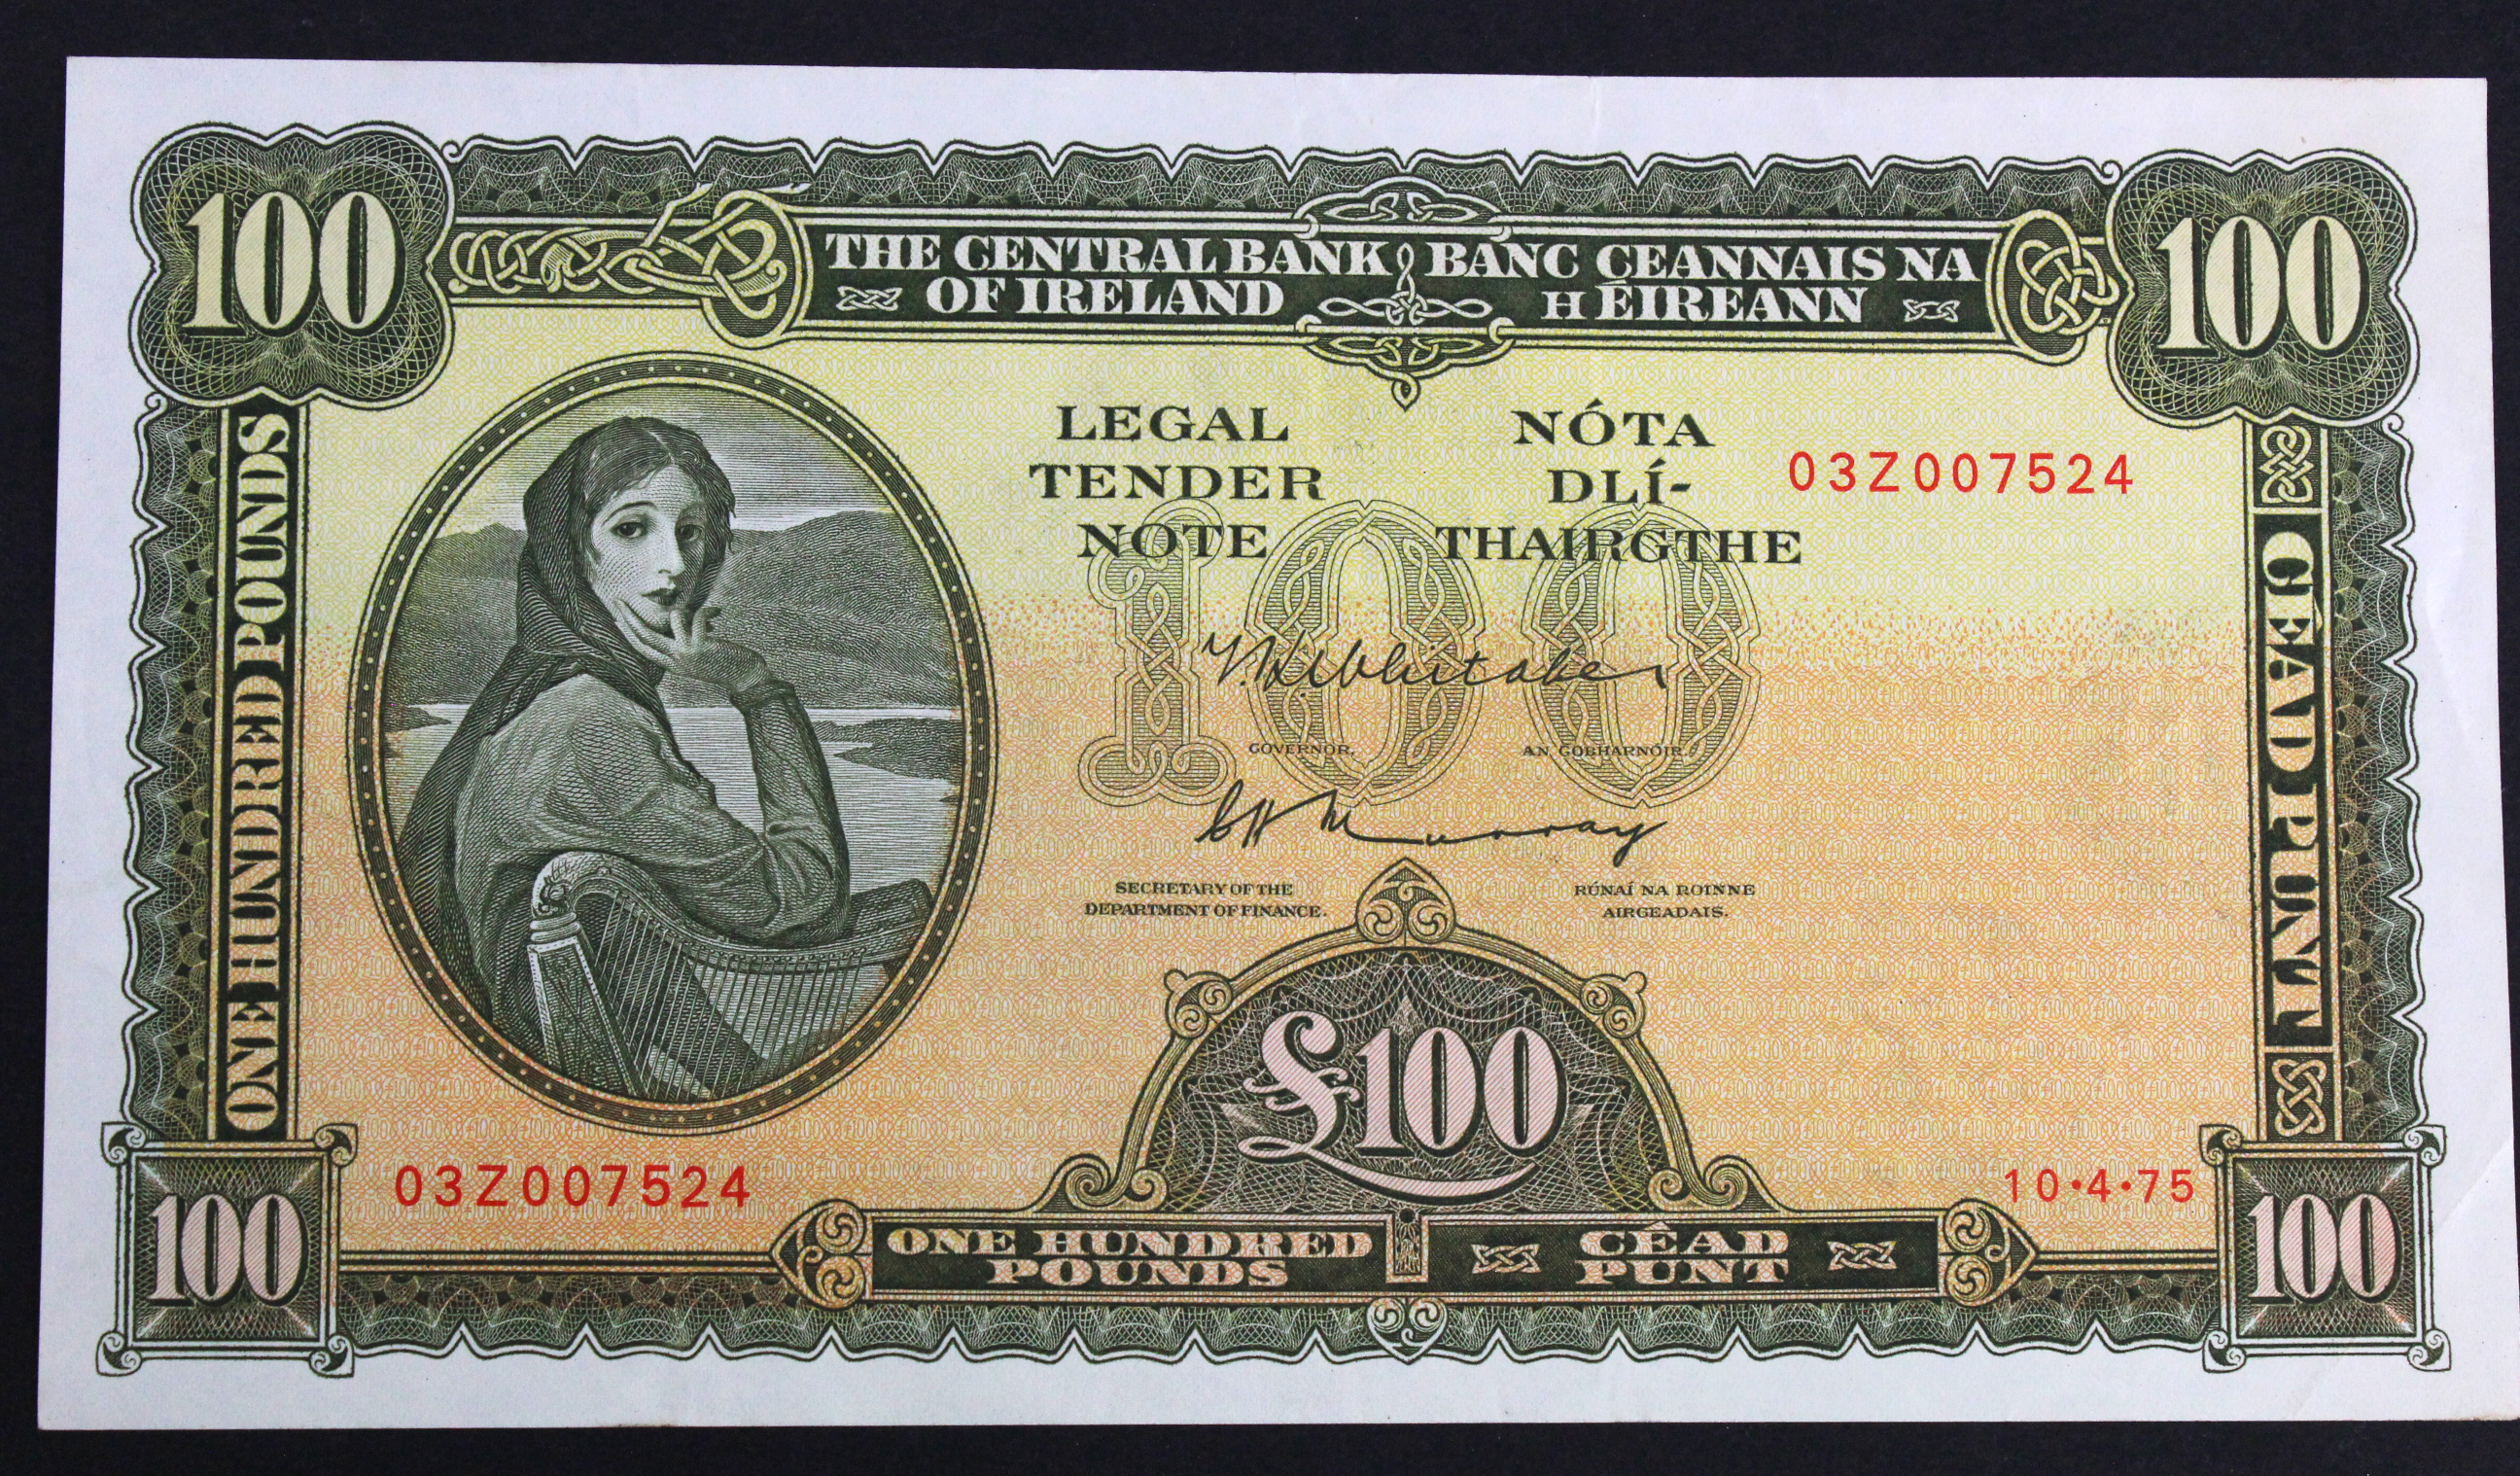 Ireland Republic 100 Pounds dated 10th April 1975, Lady Lavery portrait at left, signed Whitaker &